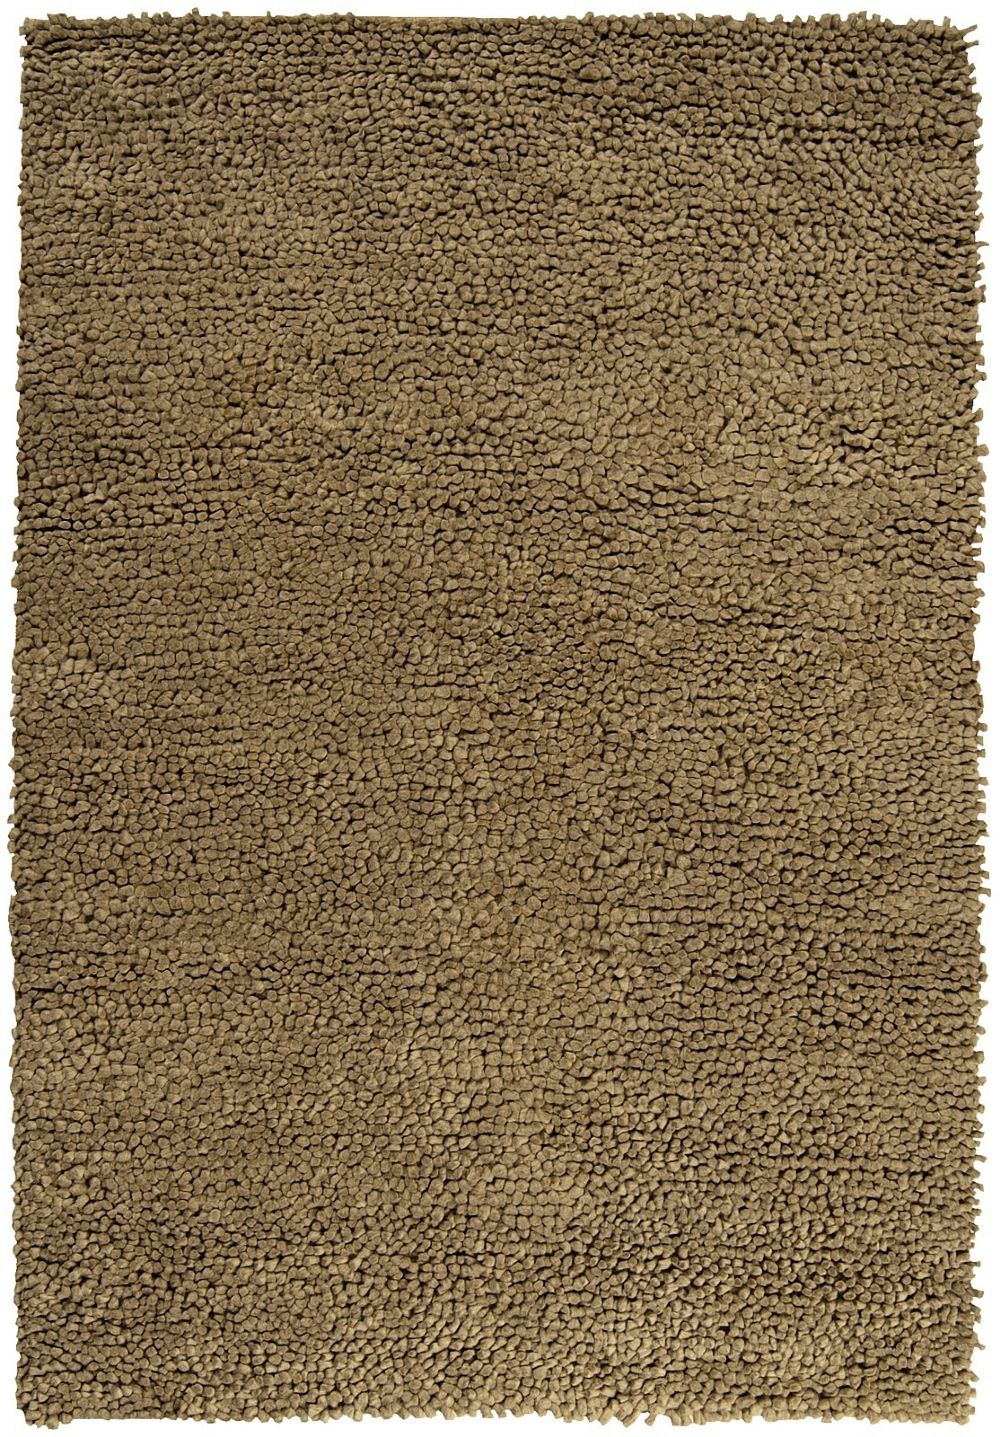 surya cirrus plush area rug collection